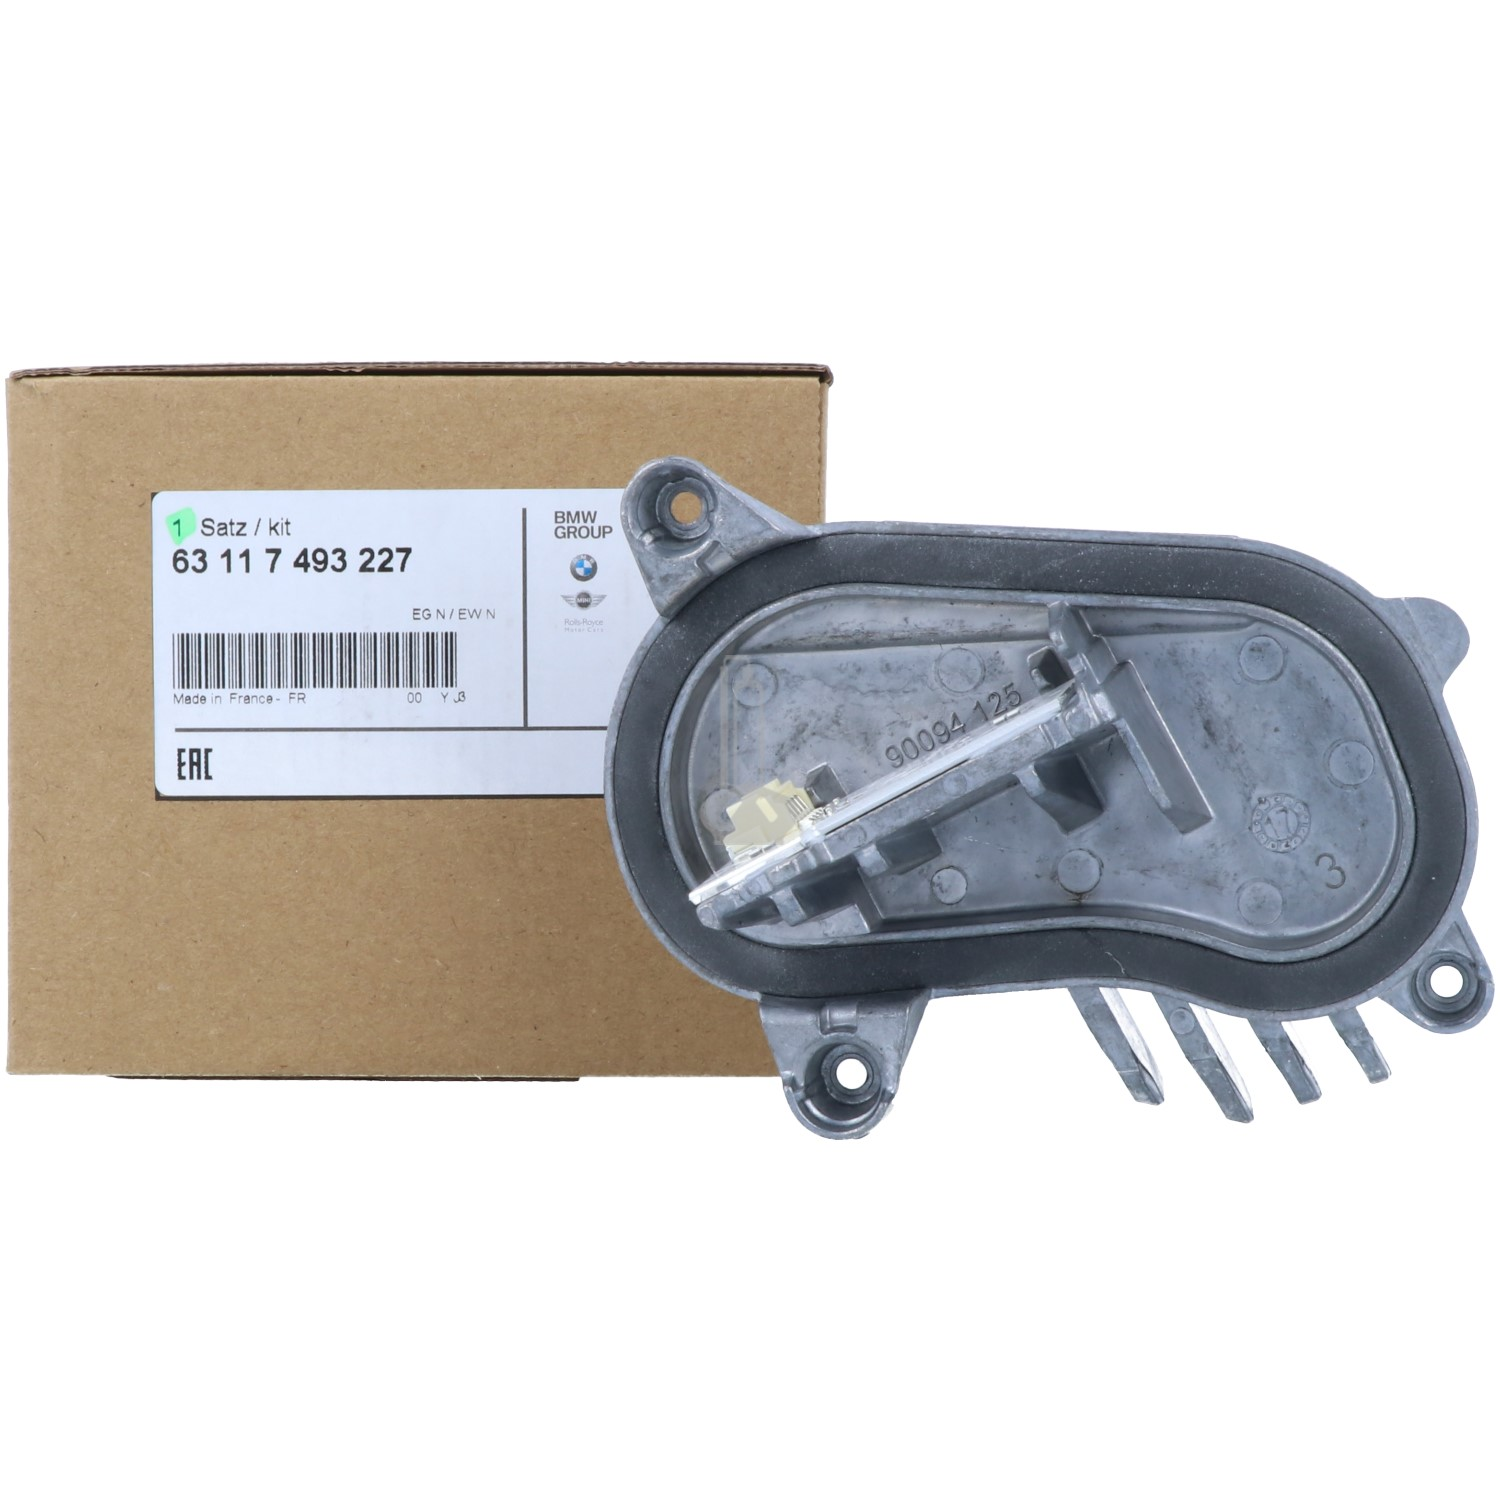 BMW 63 11 7 493 227 LED Daytime Running Light Module Left F80 F32 F33 F36 F82 F83 LCI Headlight Ballast VALEO